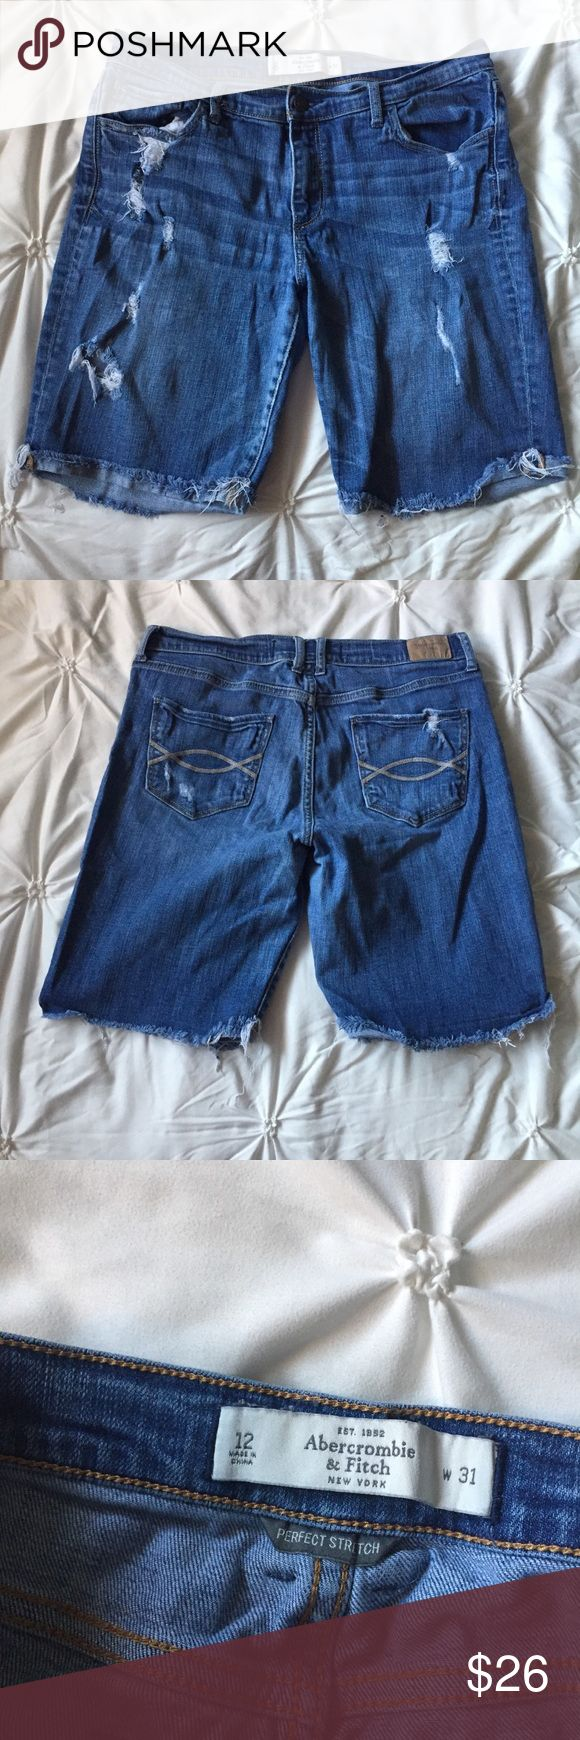 "Abercrombie and Fitch Ripped Jean Bermuda Shorts Abercrombie and Fitch Ripped Blue Jean Denim Bermuda Long Shorts- size 12 / 31 W - 18"" long top to bottom - 9"" inseam - cuffed frayed bottom hem & overall ripped distressed look, great condition!  ----- 🚭 All items are from a non-smoking home. 👆🏻Item is as described, feel free to ask questions. 📦 I am a fast shipper with excellent ratings. 👗I love bundles & bundle discounts. Feel free to make an offer! 😍 Like this item? Check out the…"